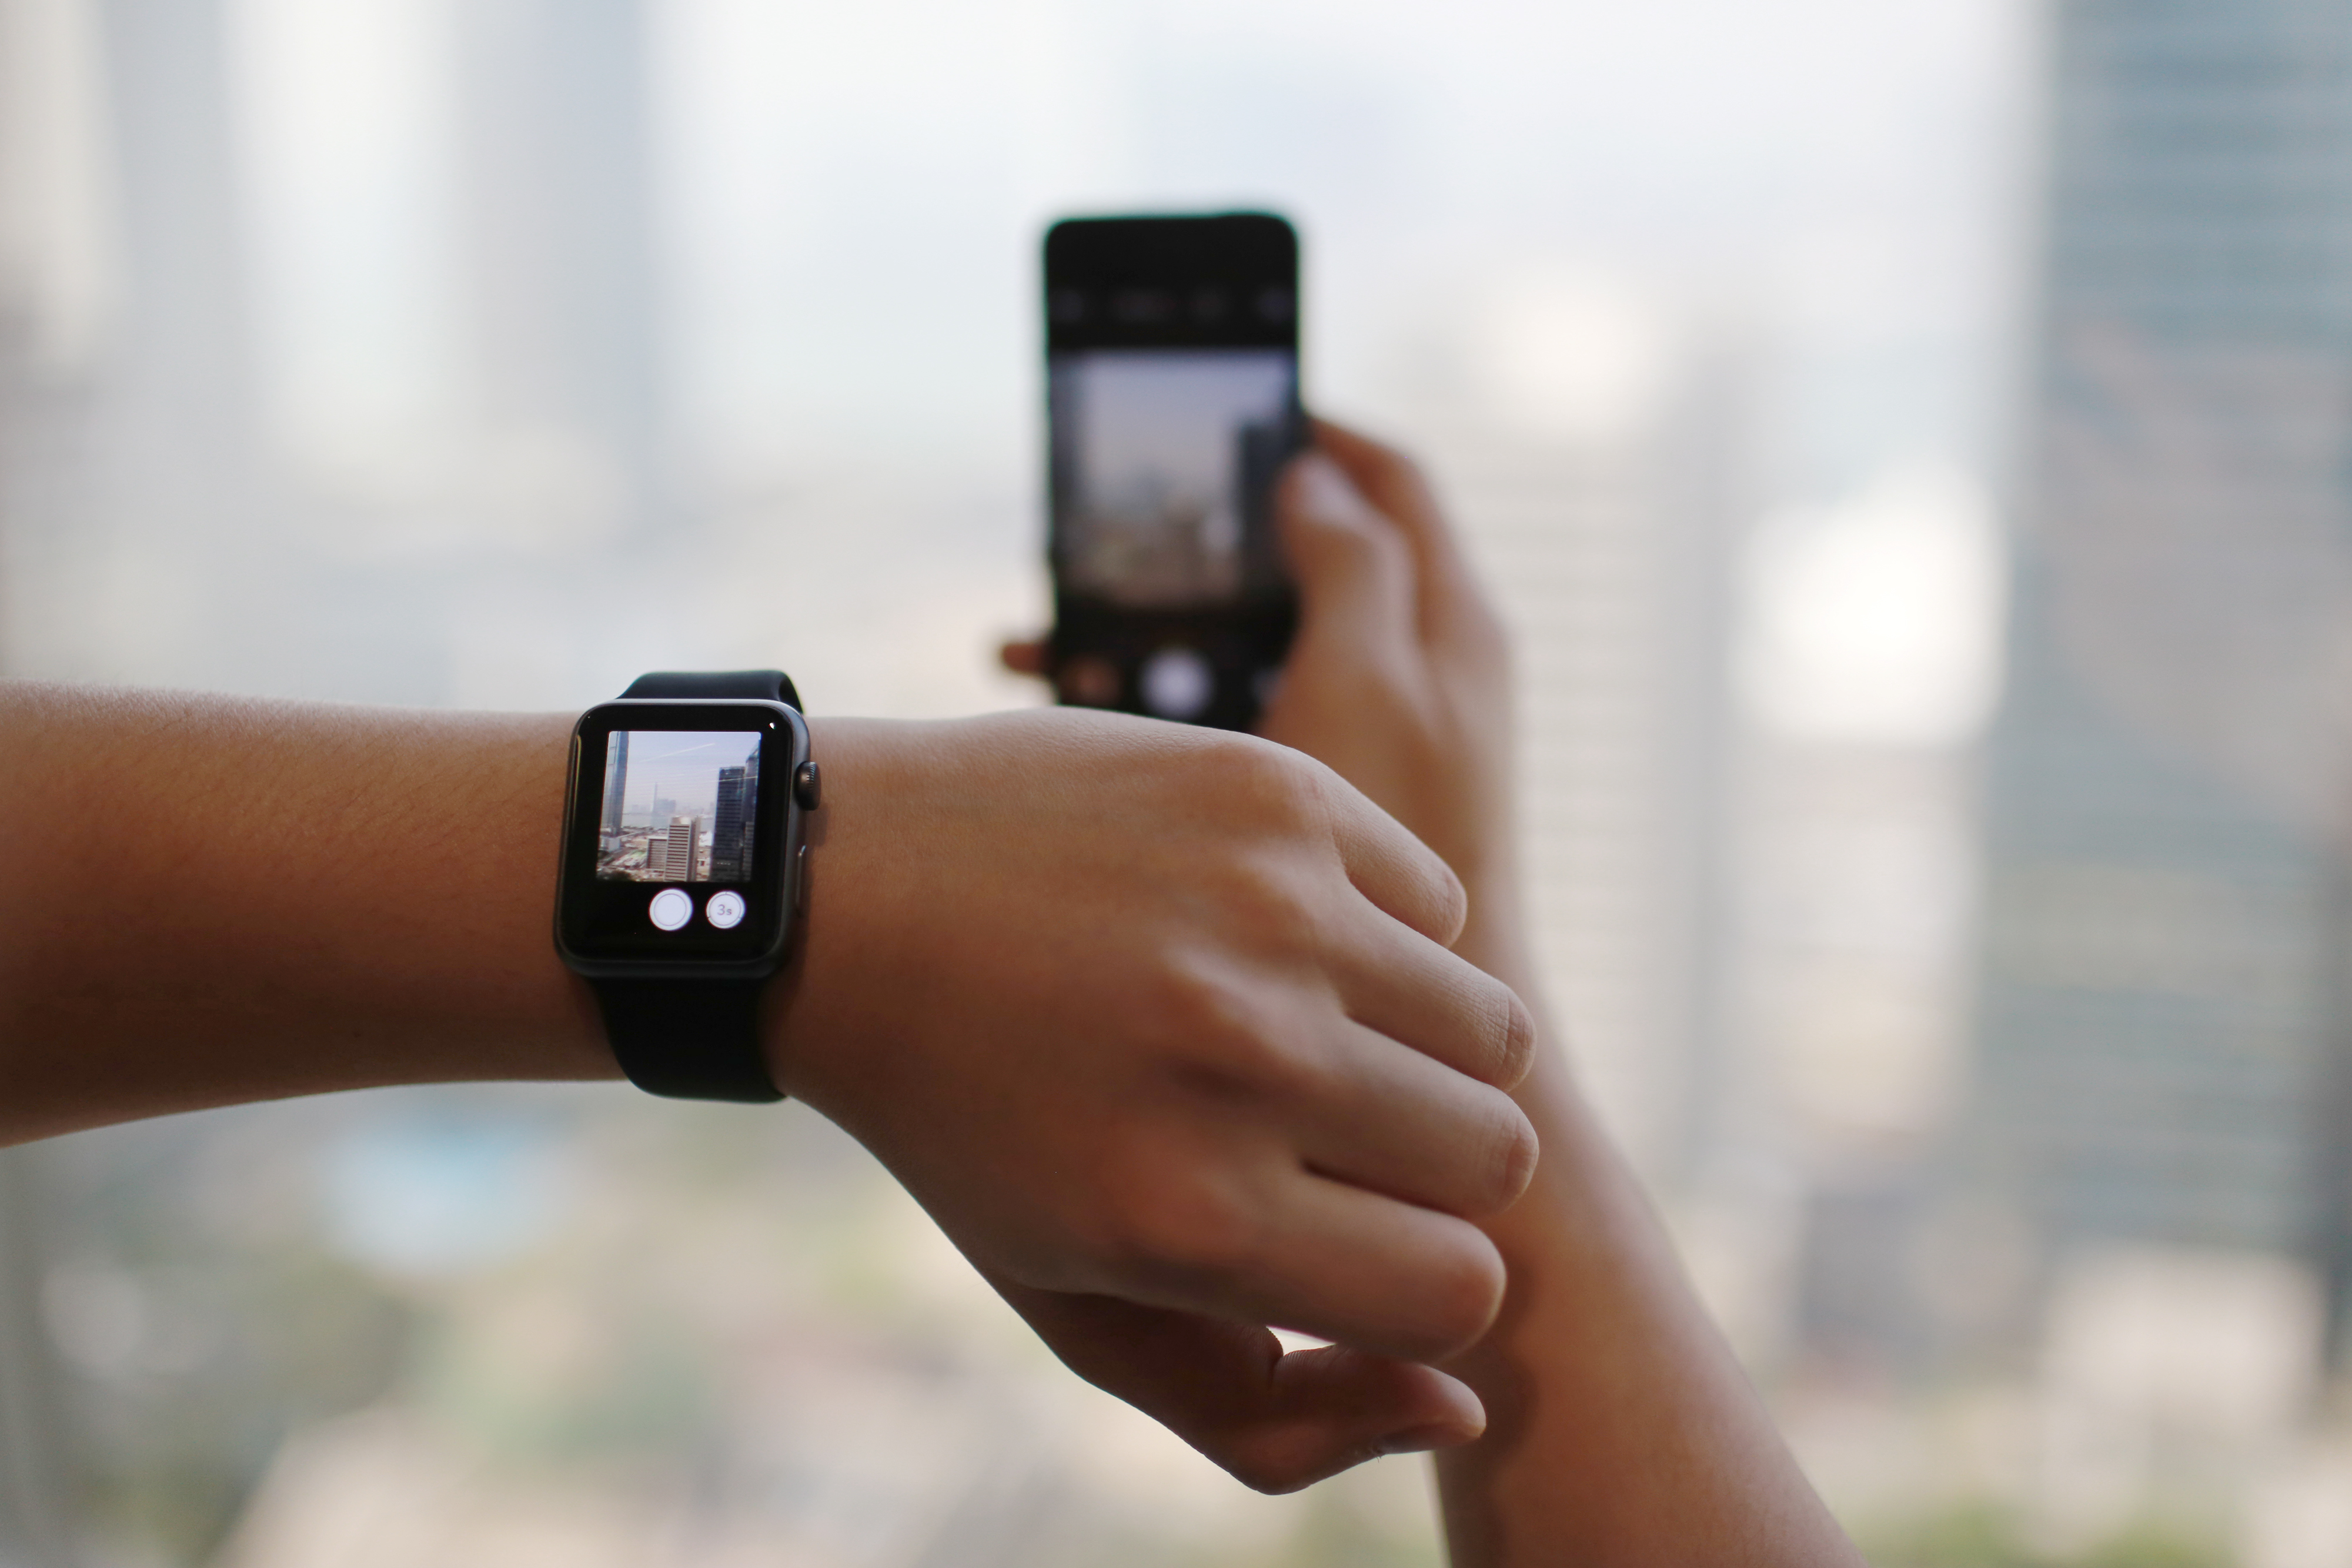 A man uses the remote camera function on an Apple Watch Sport smartwatch as he holds an Apple iPhone 5s smartphone in an arranged photograph in Hong Kong, April 24, 2015.